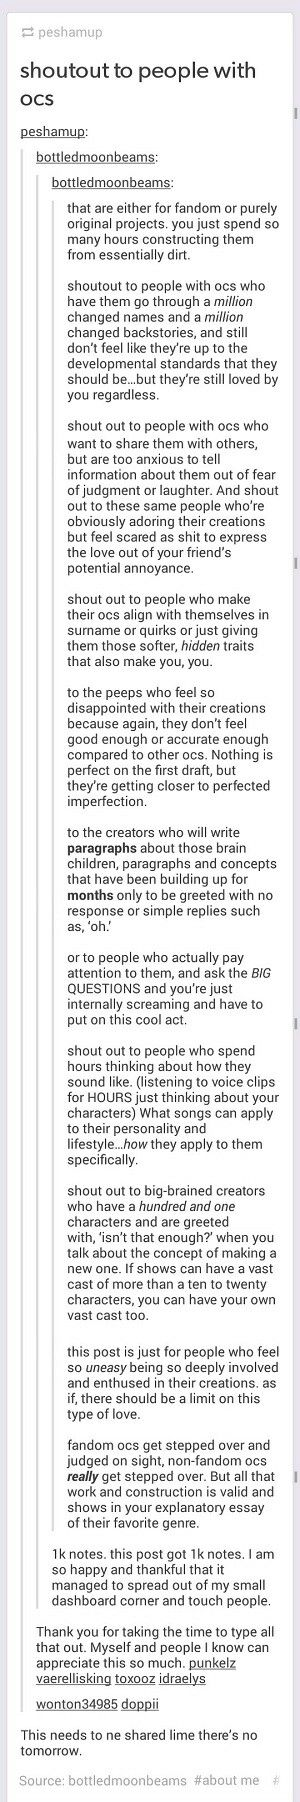 Tumblr: shoutout to people with OCs. This post truly lifted my soul and heart on my stories and characters especially. Bless this person who wrote this. Truly encouraging. (´∀`)